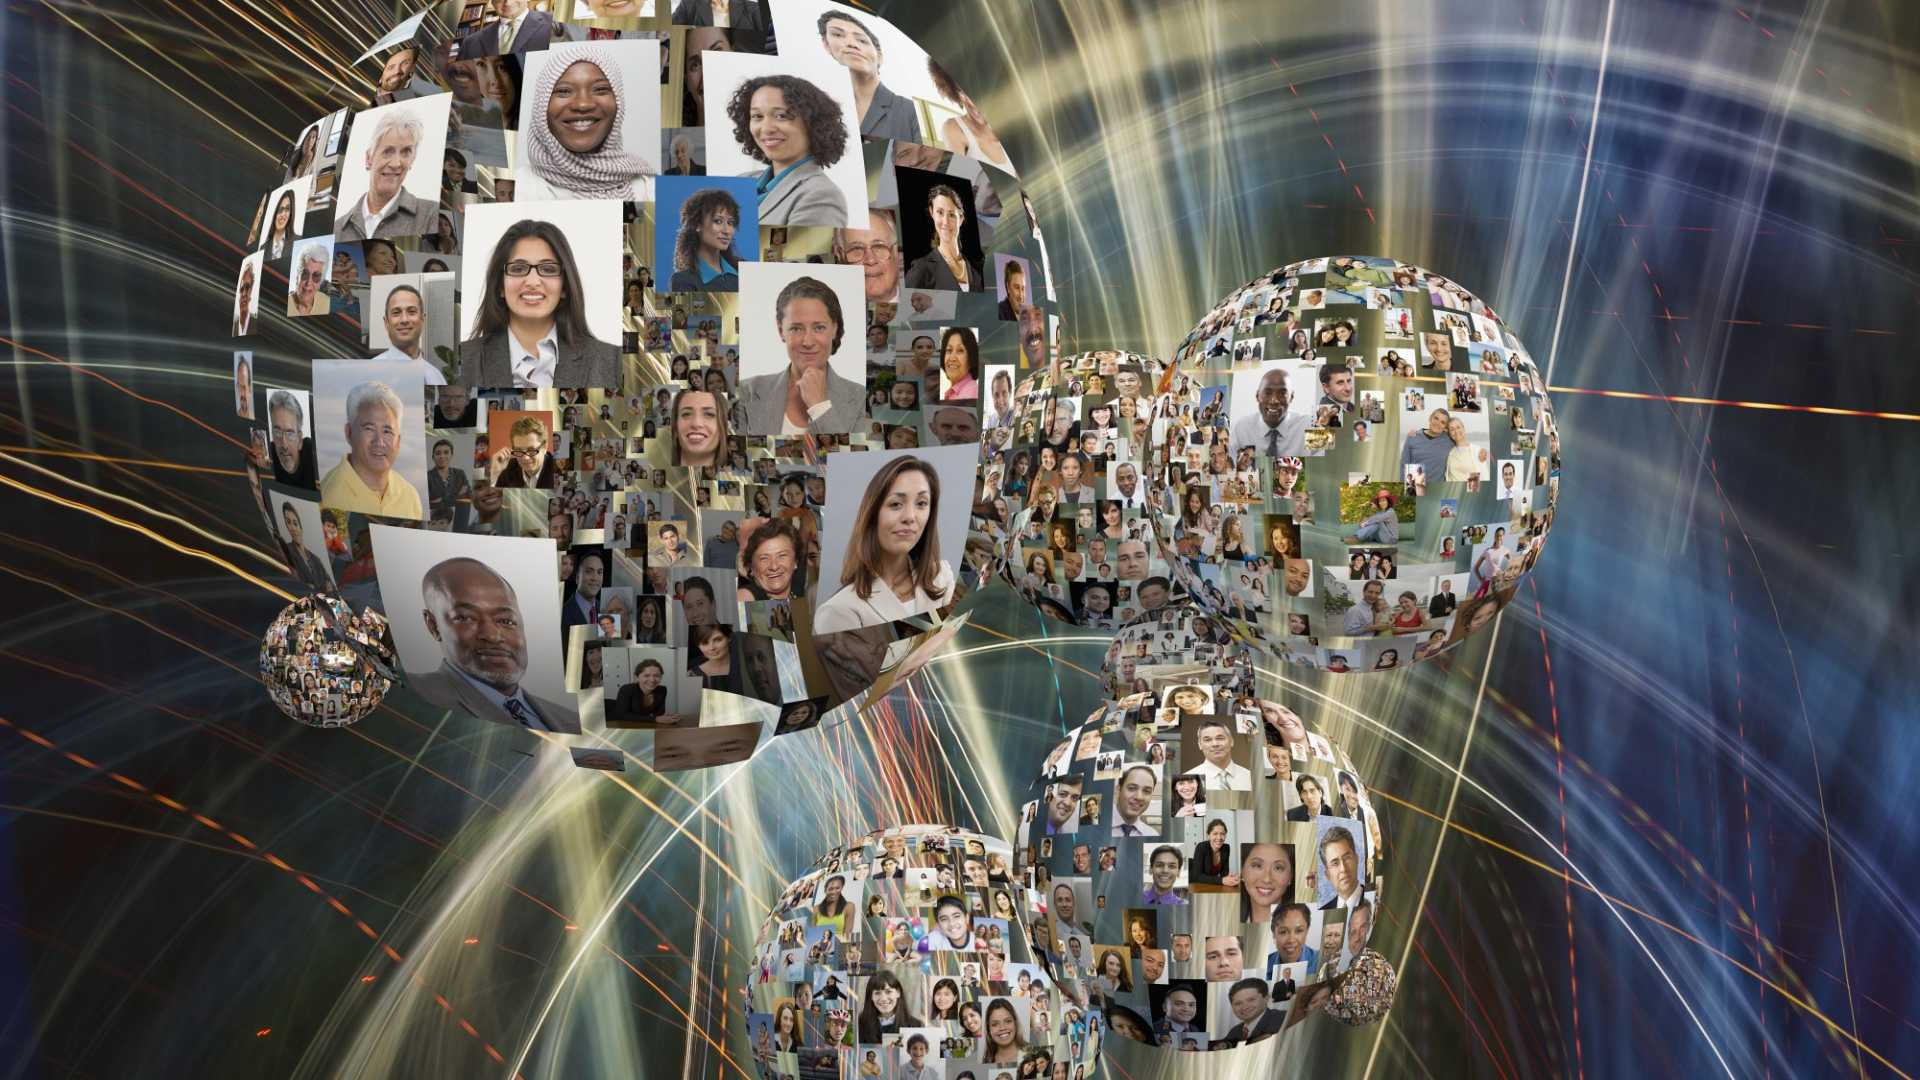 How This New Professional Social NetworkIs Approaching 40 Million Users